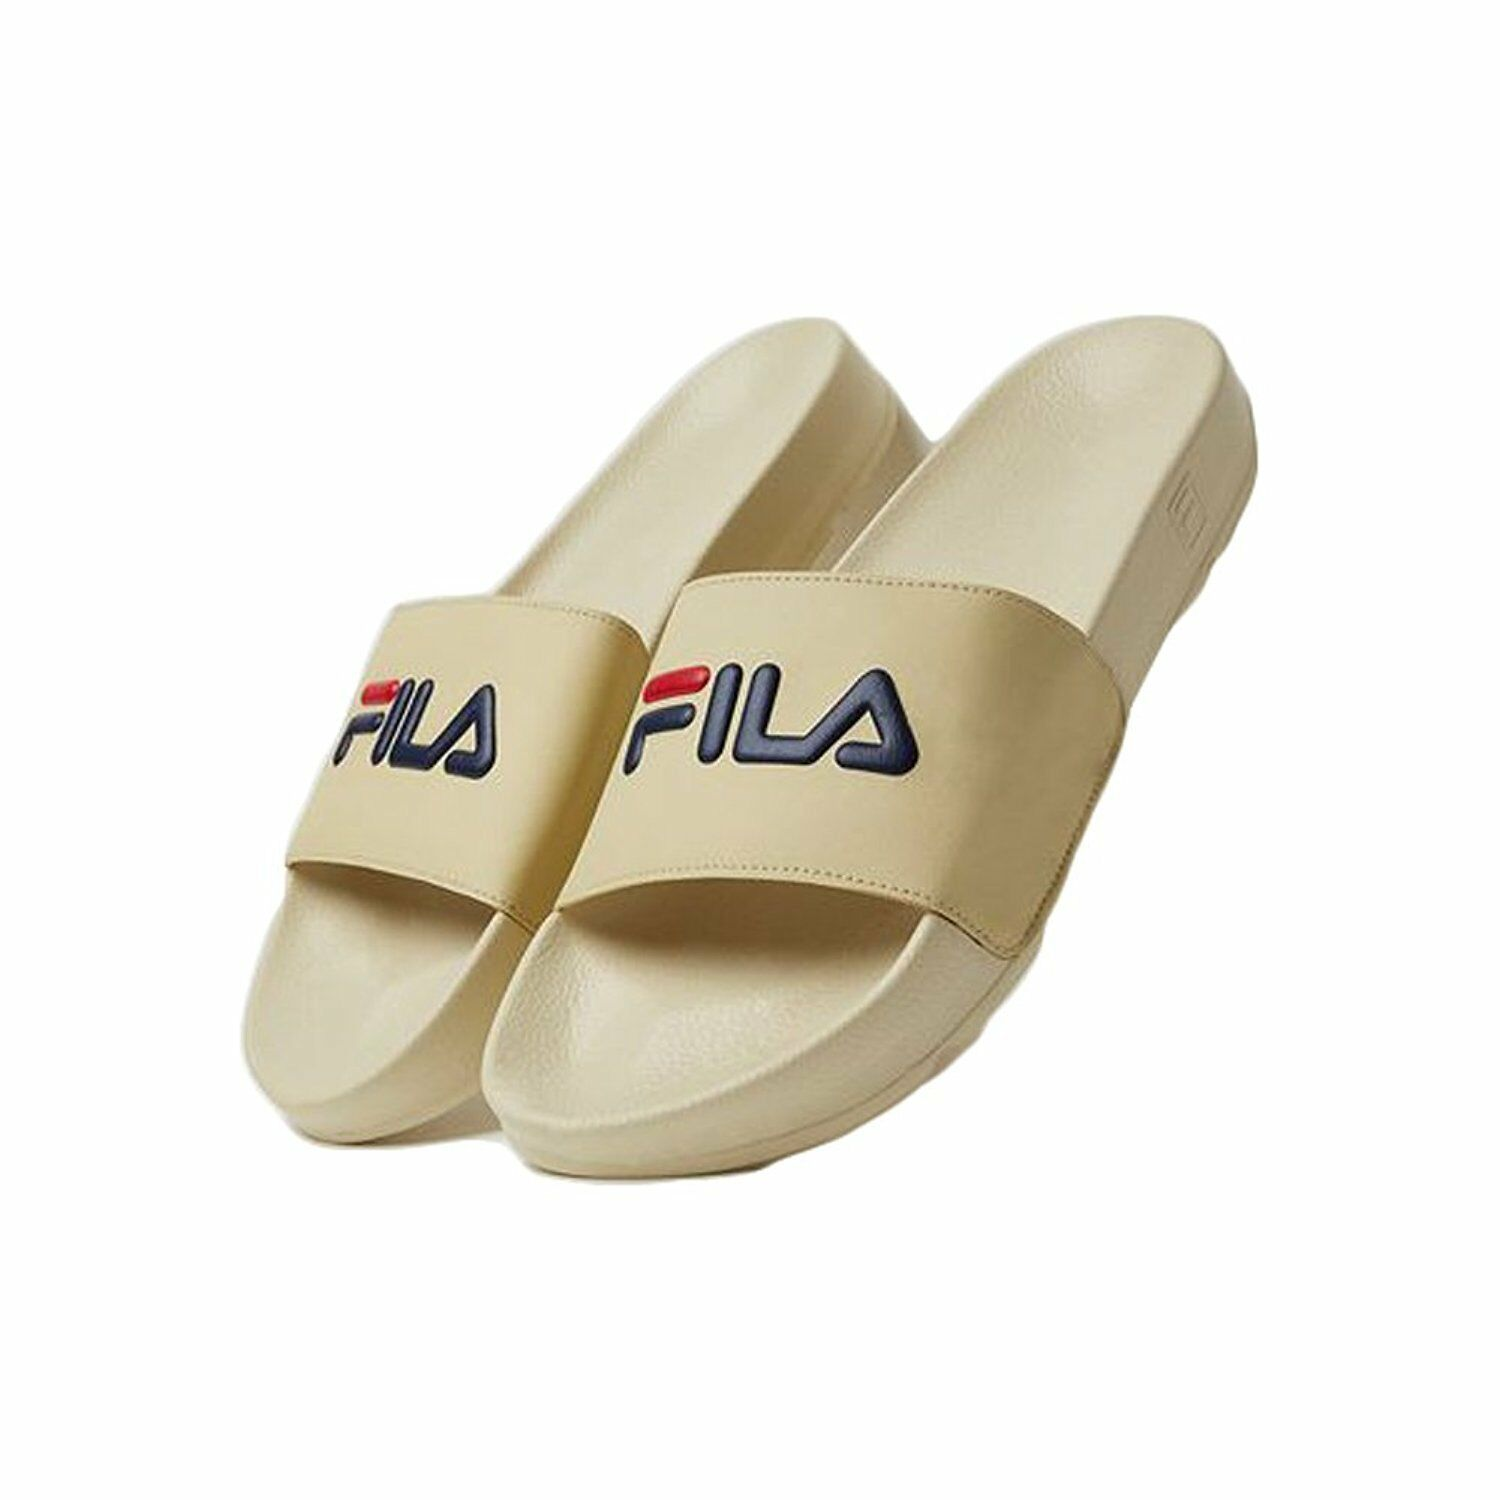 Fila Drifter Slide Sandals Beige (WS) (5VS00000-922)